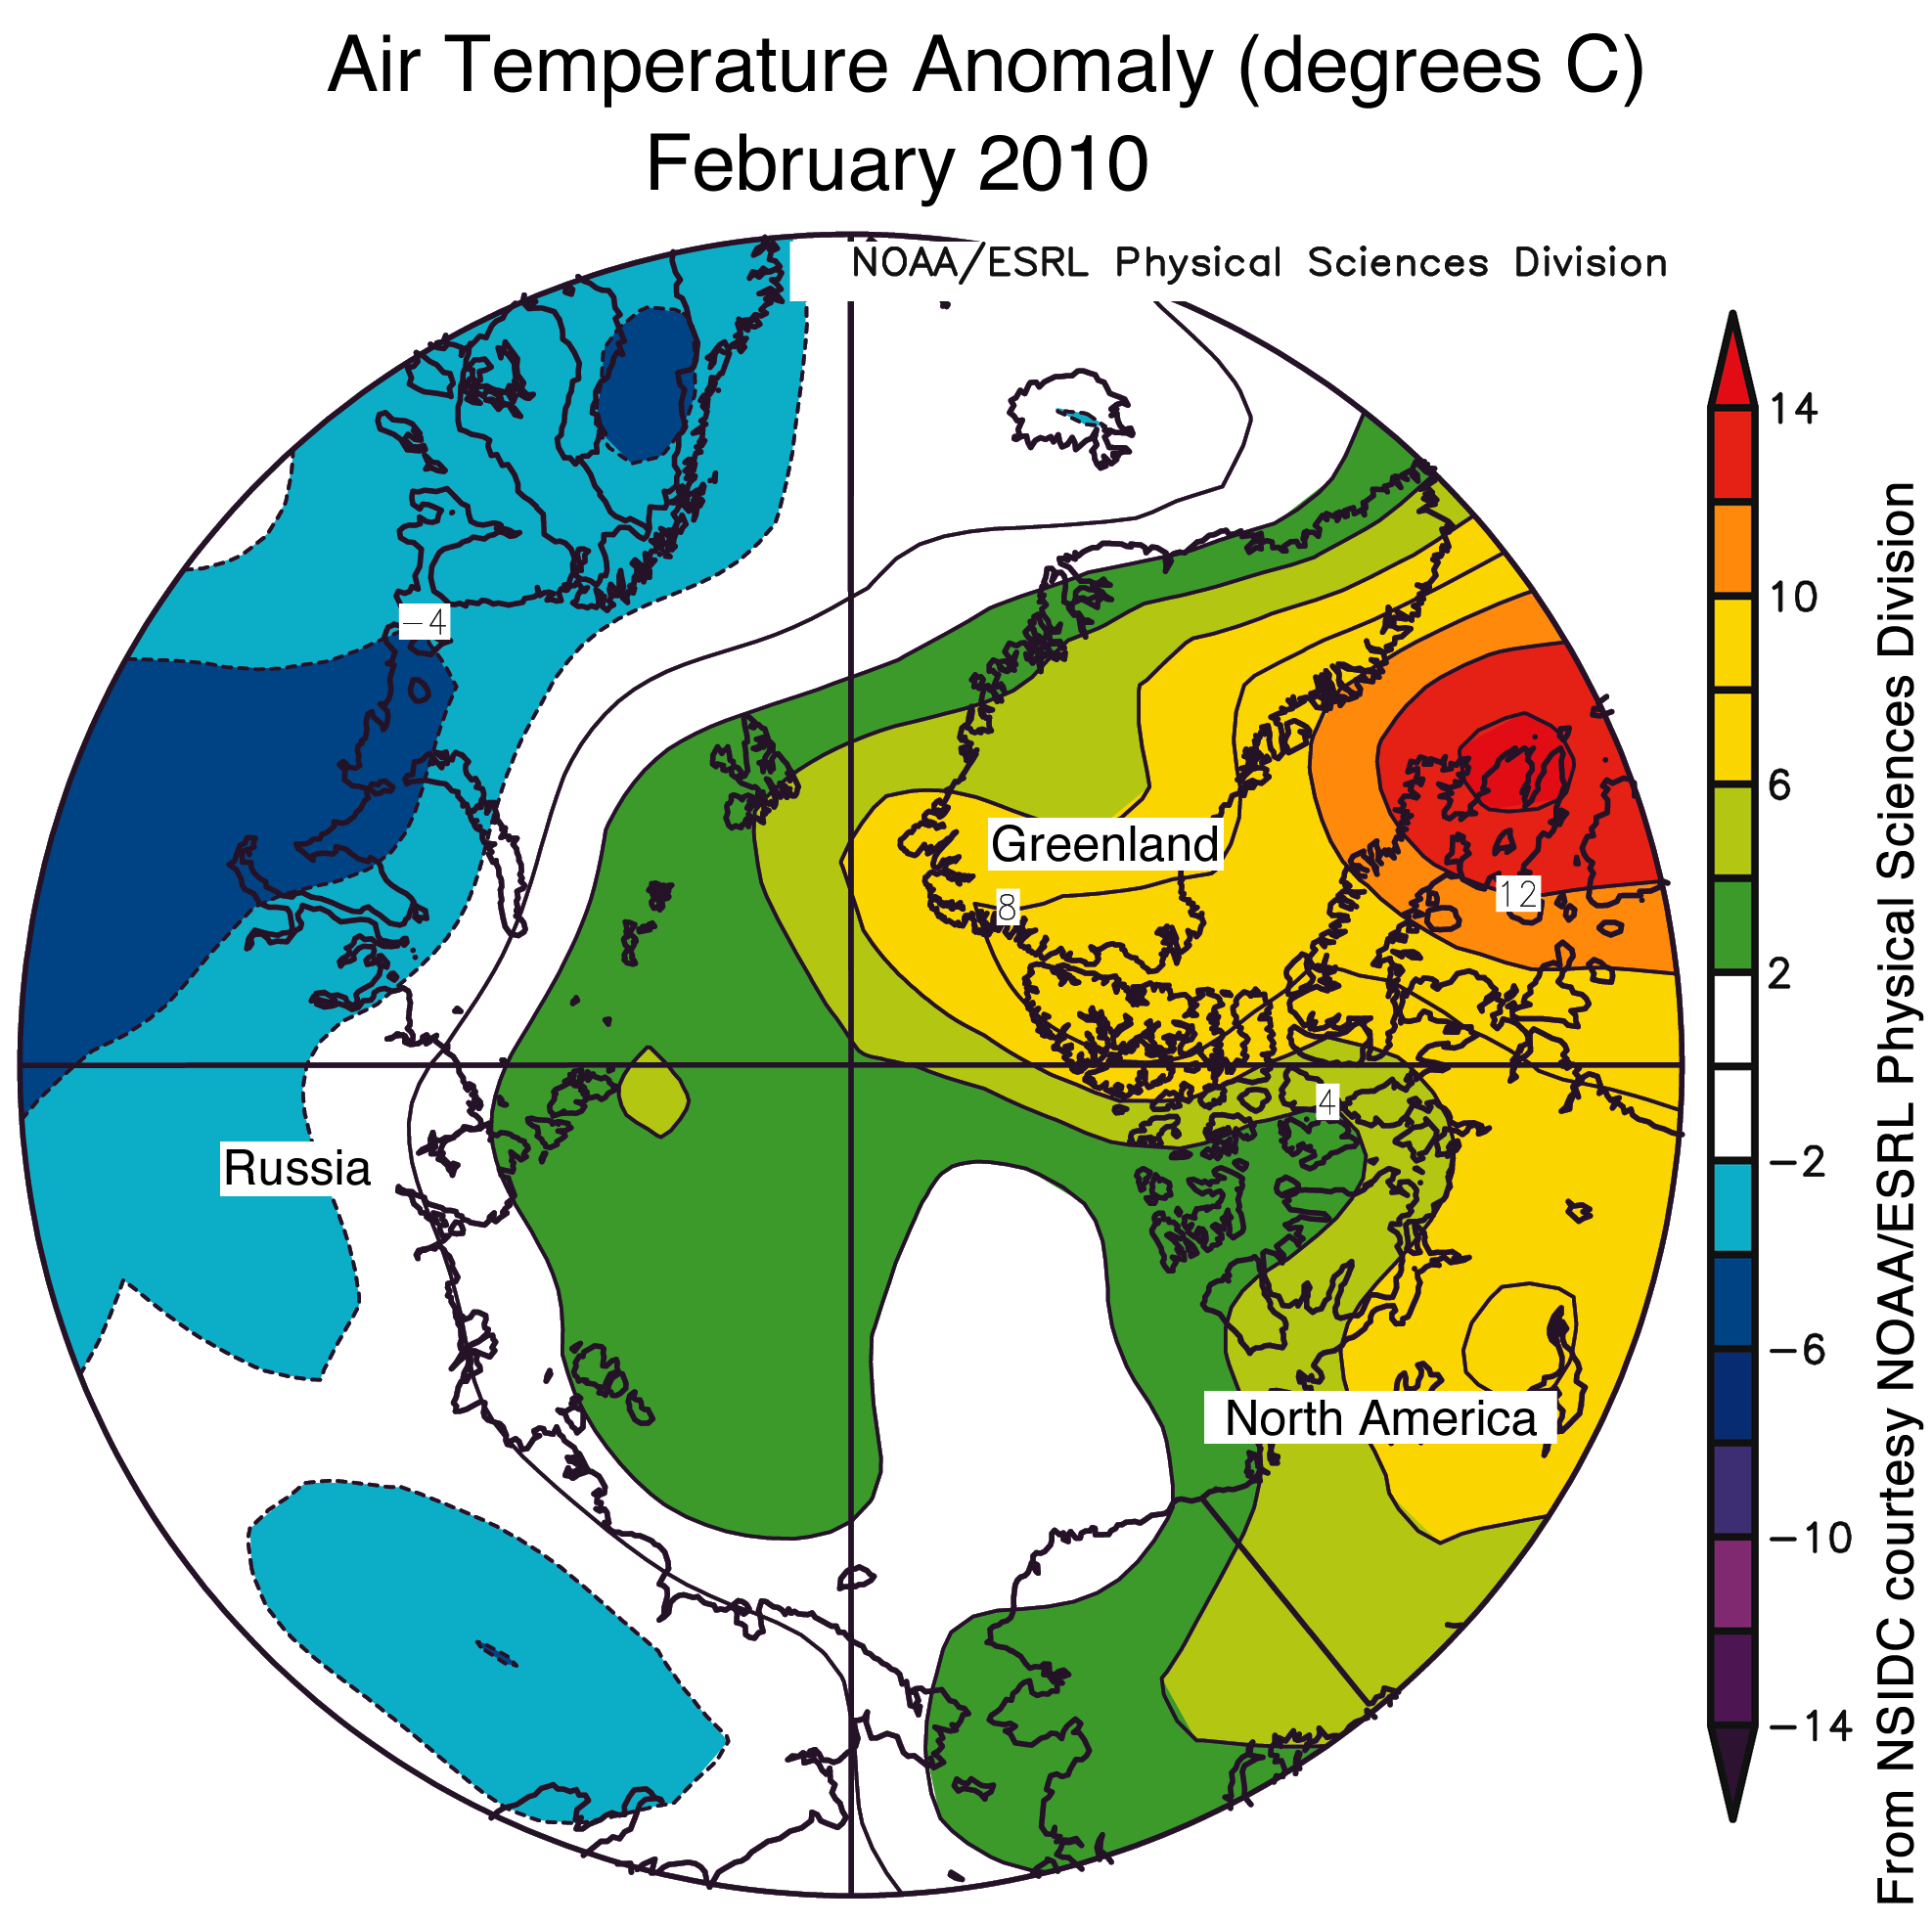 climate change arctic essay Climate itself adjusts from the times of 'ice ages,' hen huge ice sheets covered large areas that are currently ice-free, to periods similar to today hen ice sheets are largely confined to antarctica, greenland, and the floating arctic sea ice.